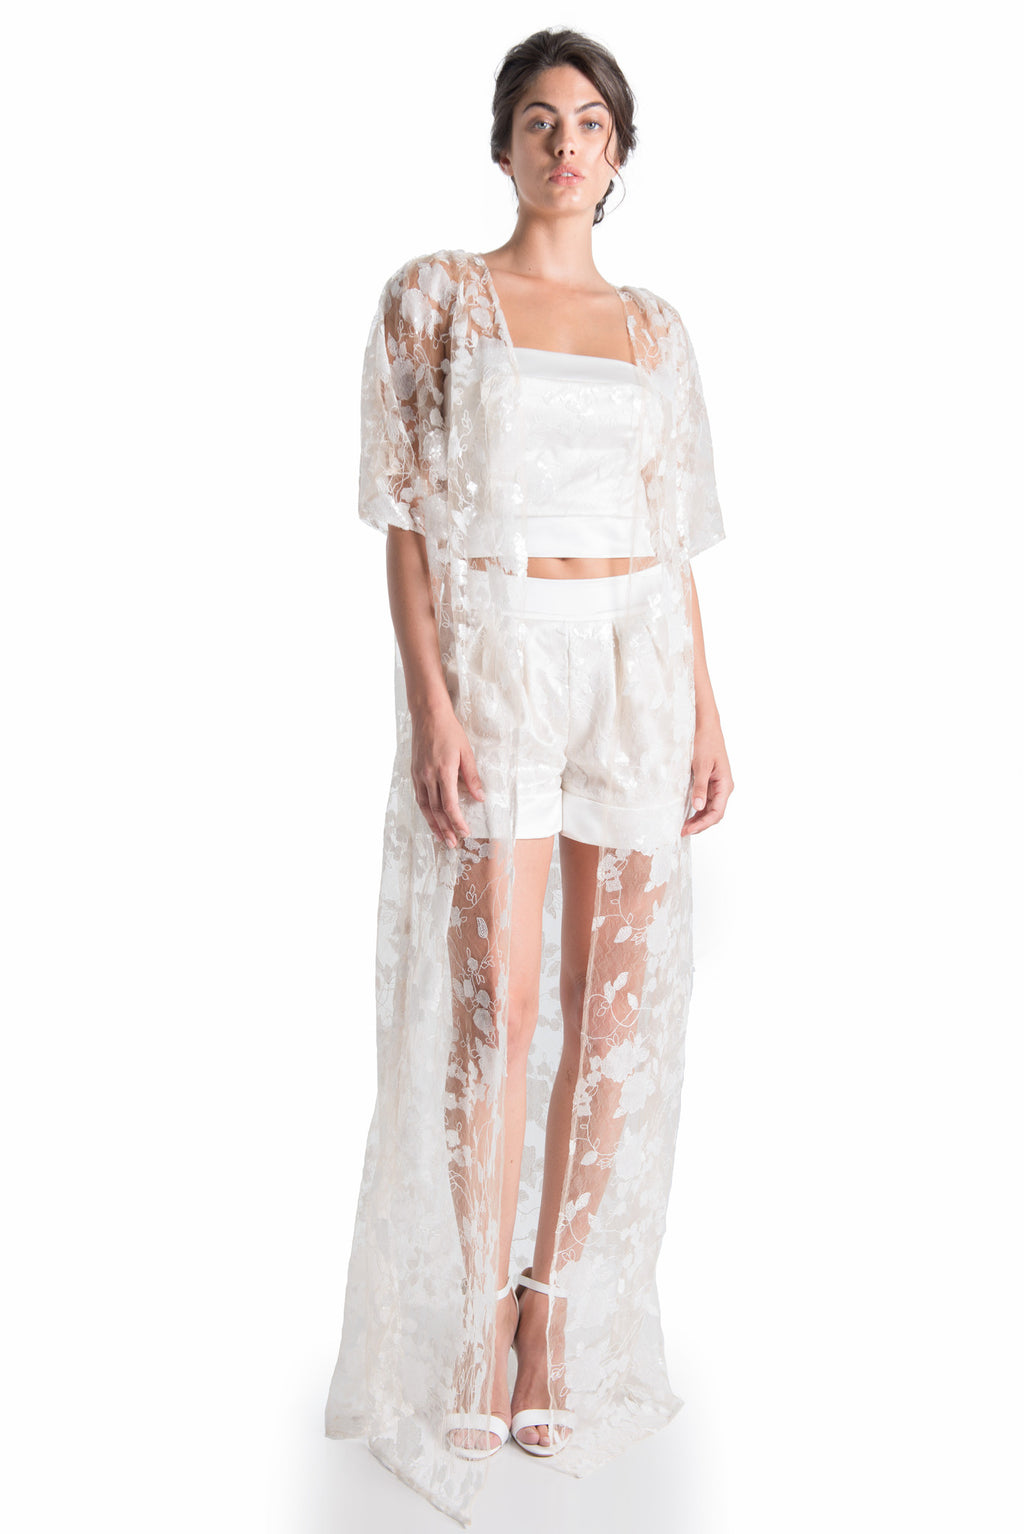 VENETIAN Lace Kimono - NATURAL WHT | SAMPLE - HAUS OF SONG